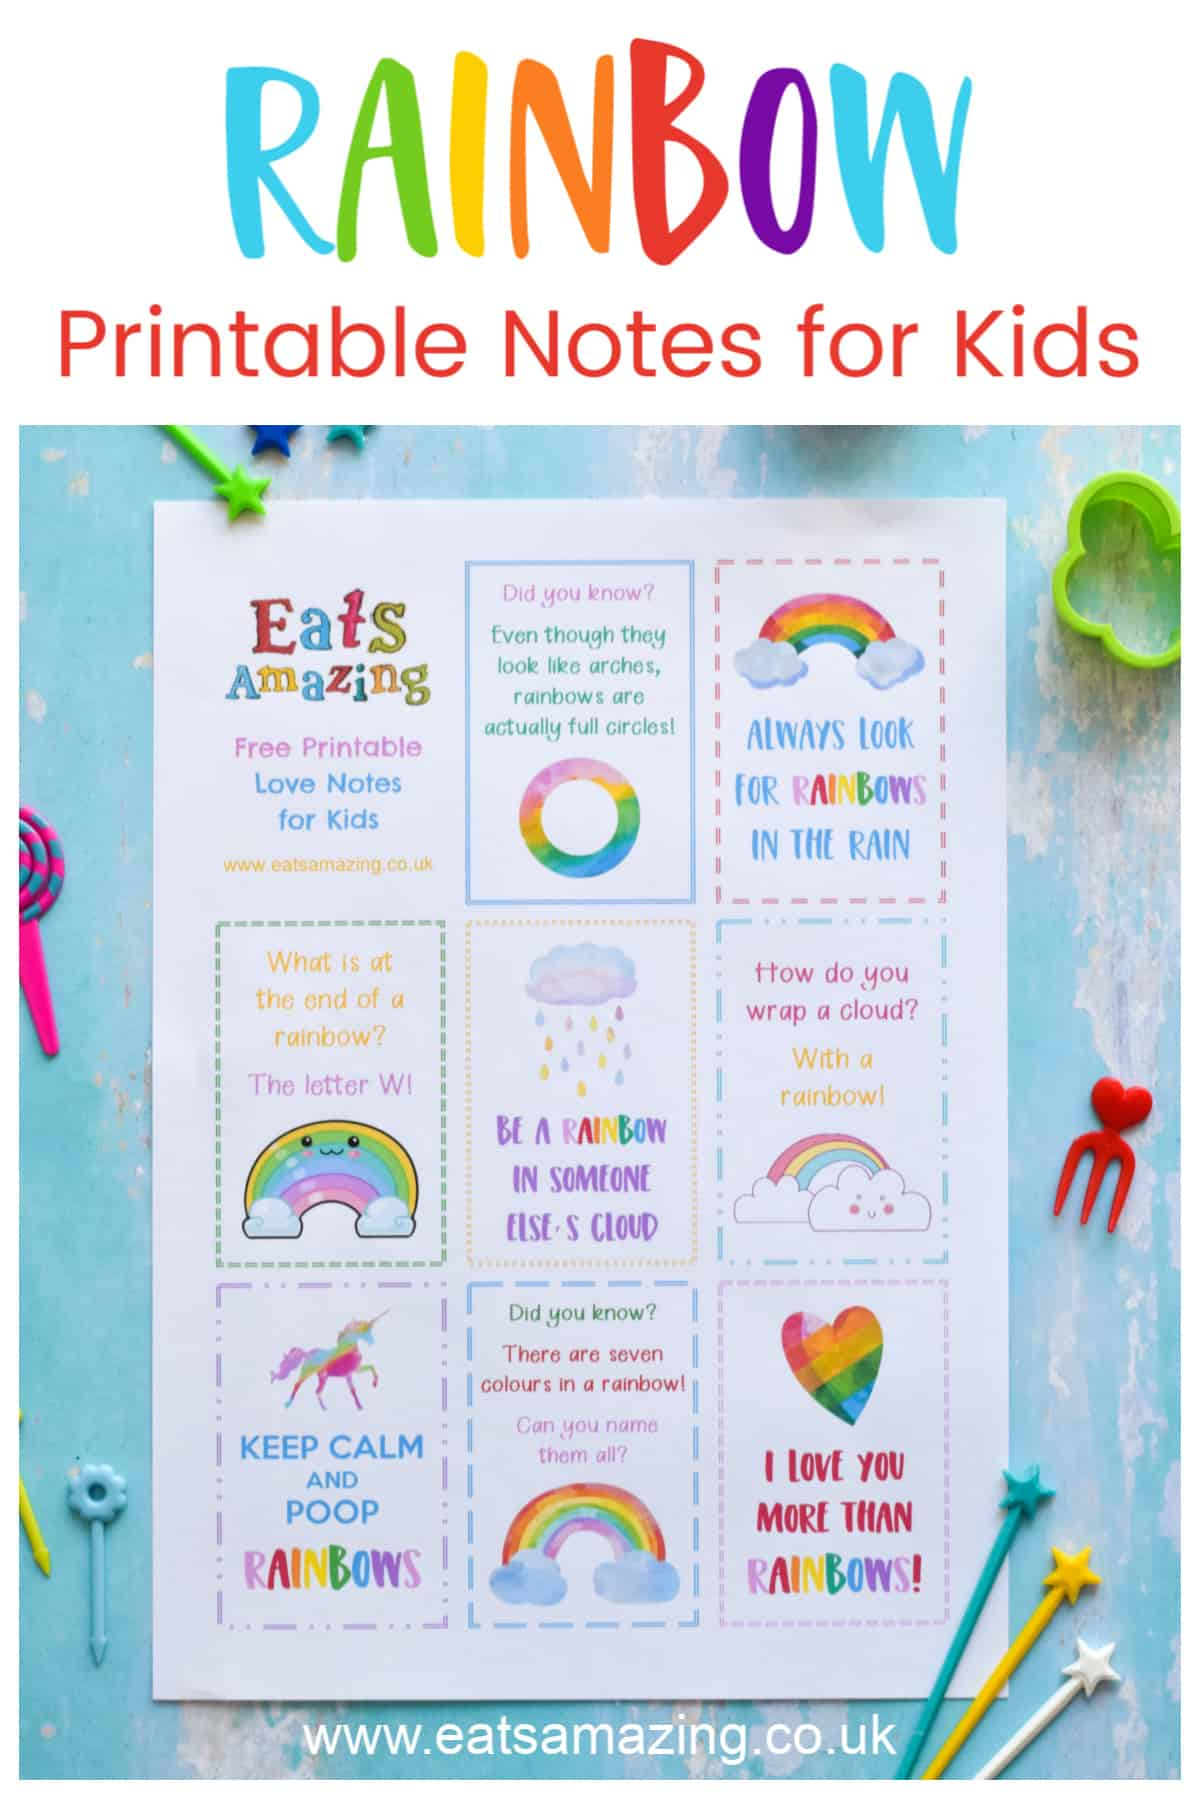 FREE Rainbow themed Printable lunchbox notes for kids - just download print and cut up for instant fun notes to pop in lunch boxes and school bags